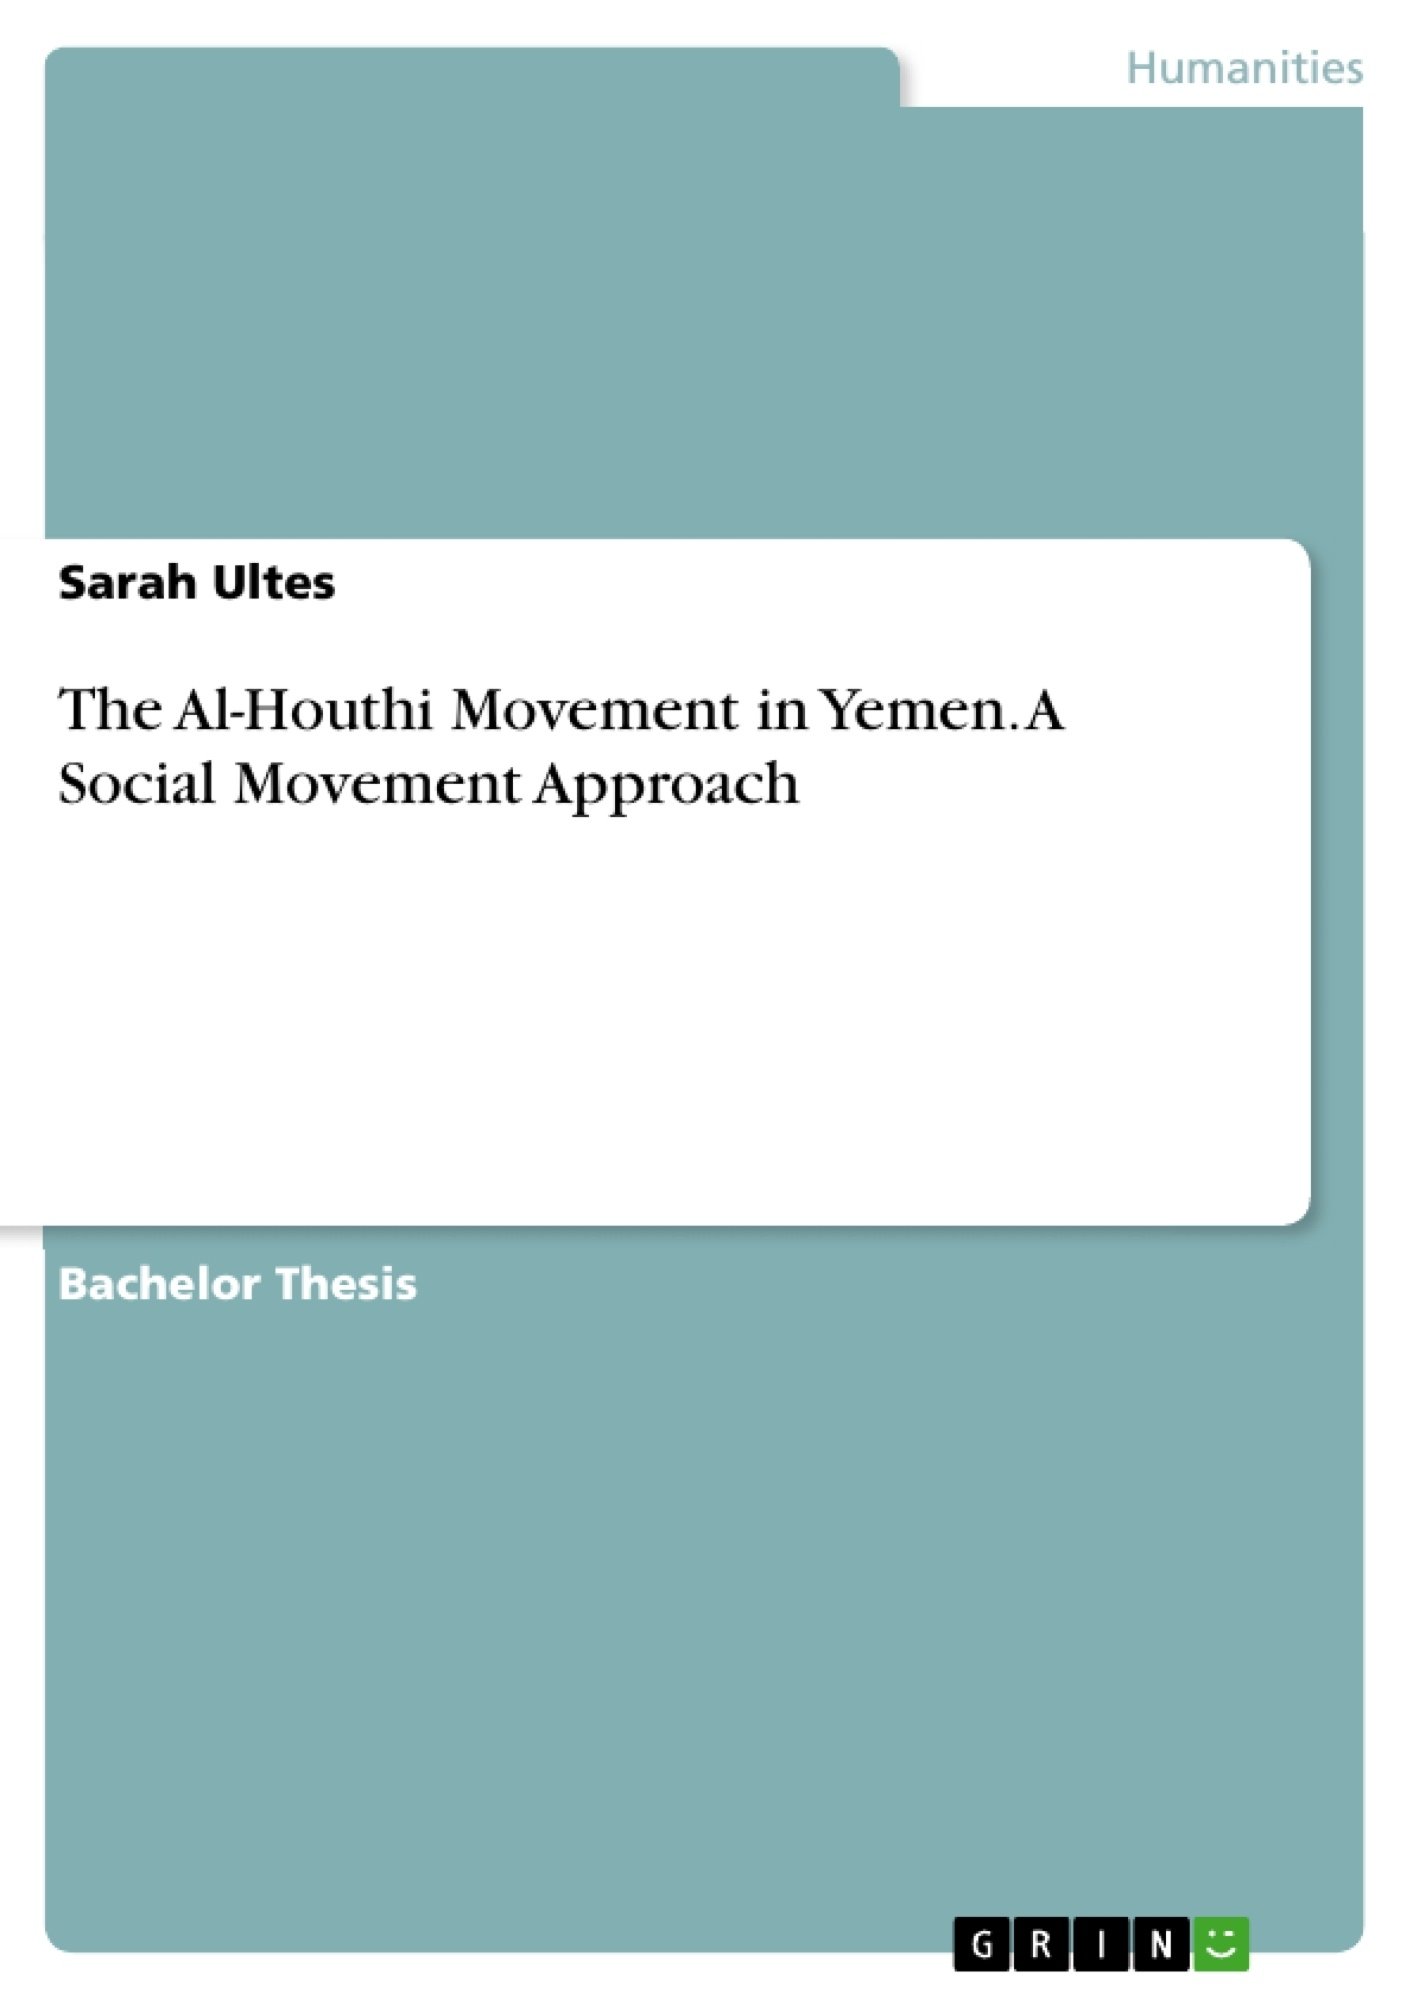 Title: The Al-Houthi Movement in Yemen. A Social Movement Approach